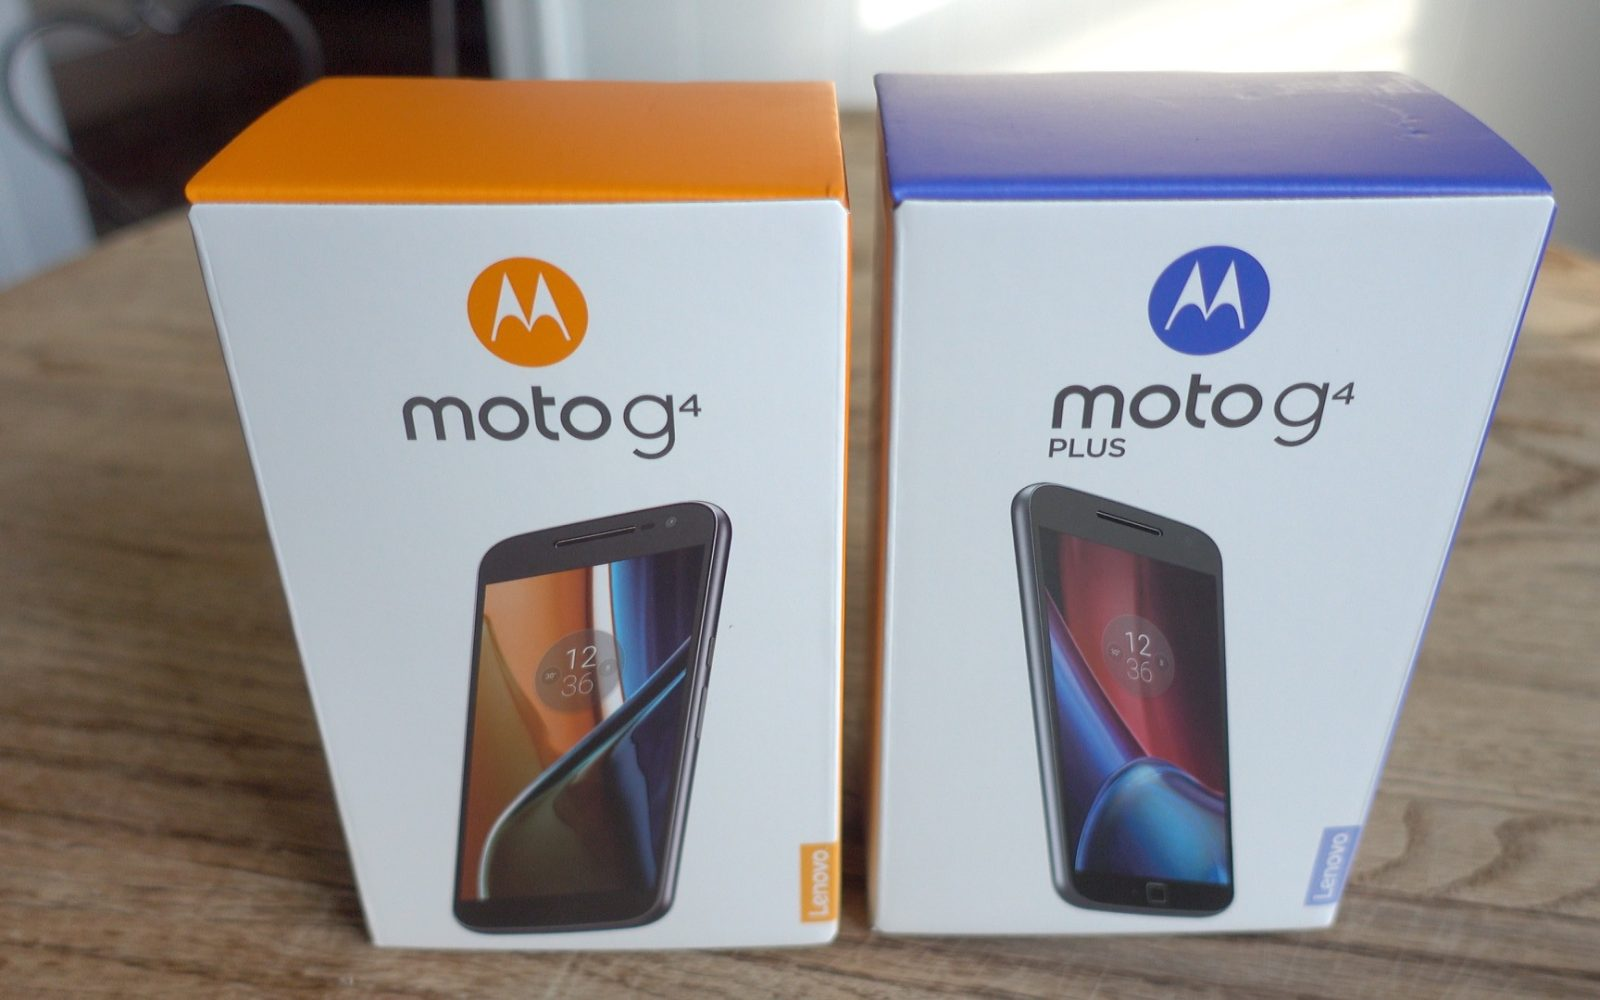 Hands-on: Moto G4 and Moto G4 Plus - can Motorola build on its